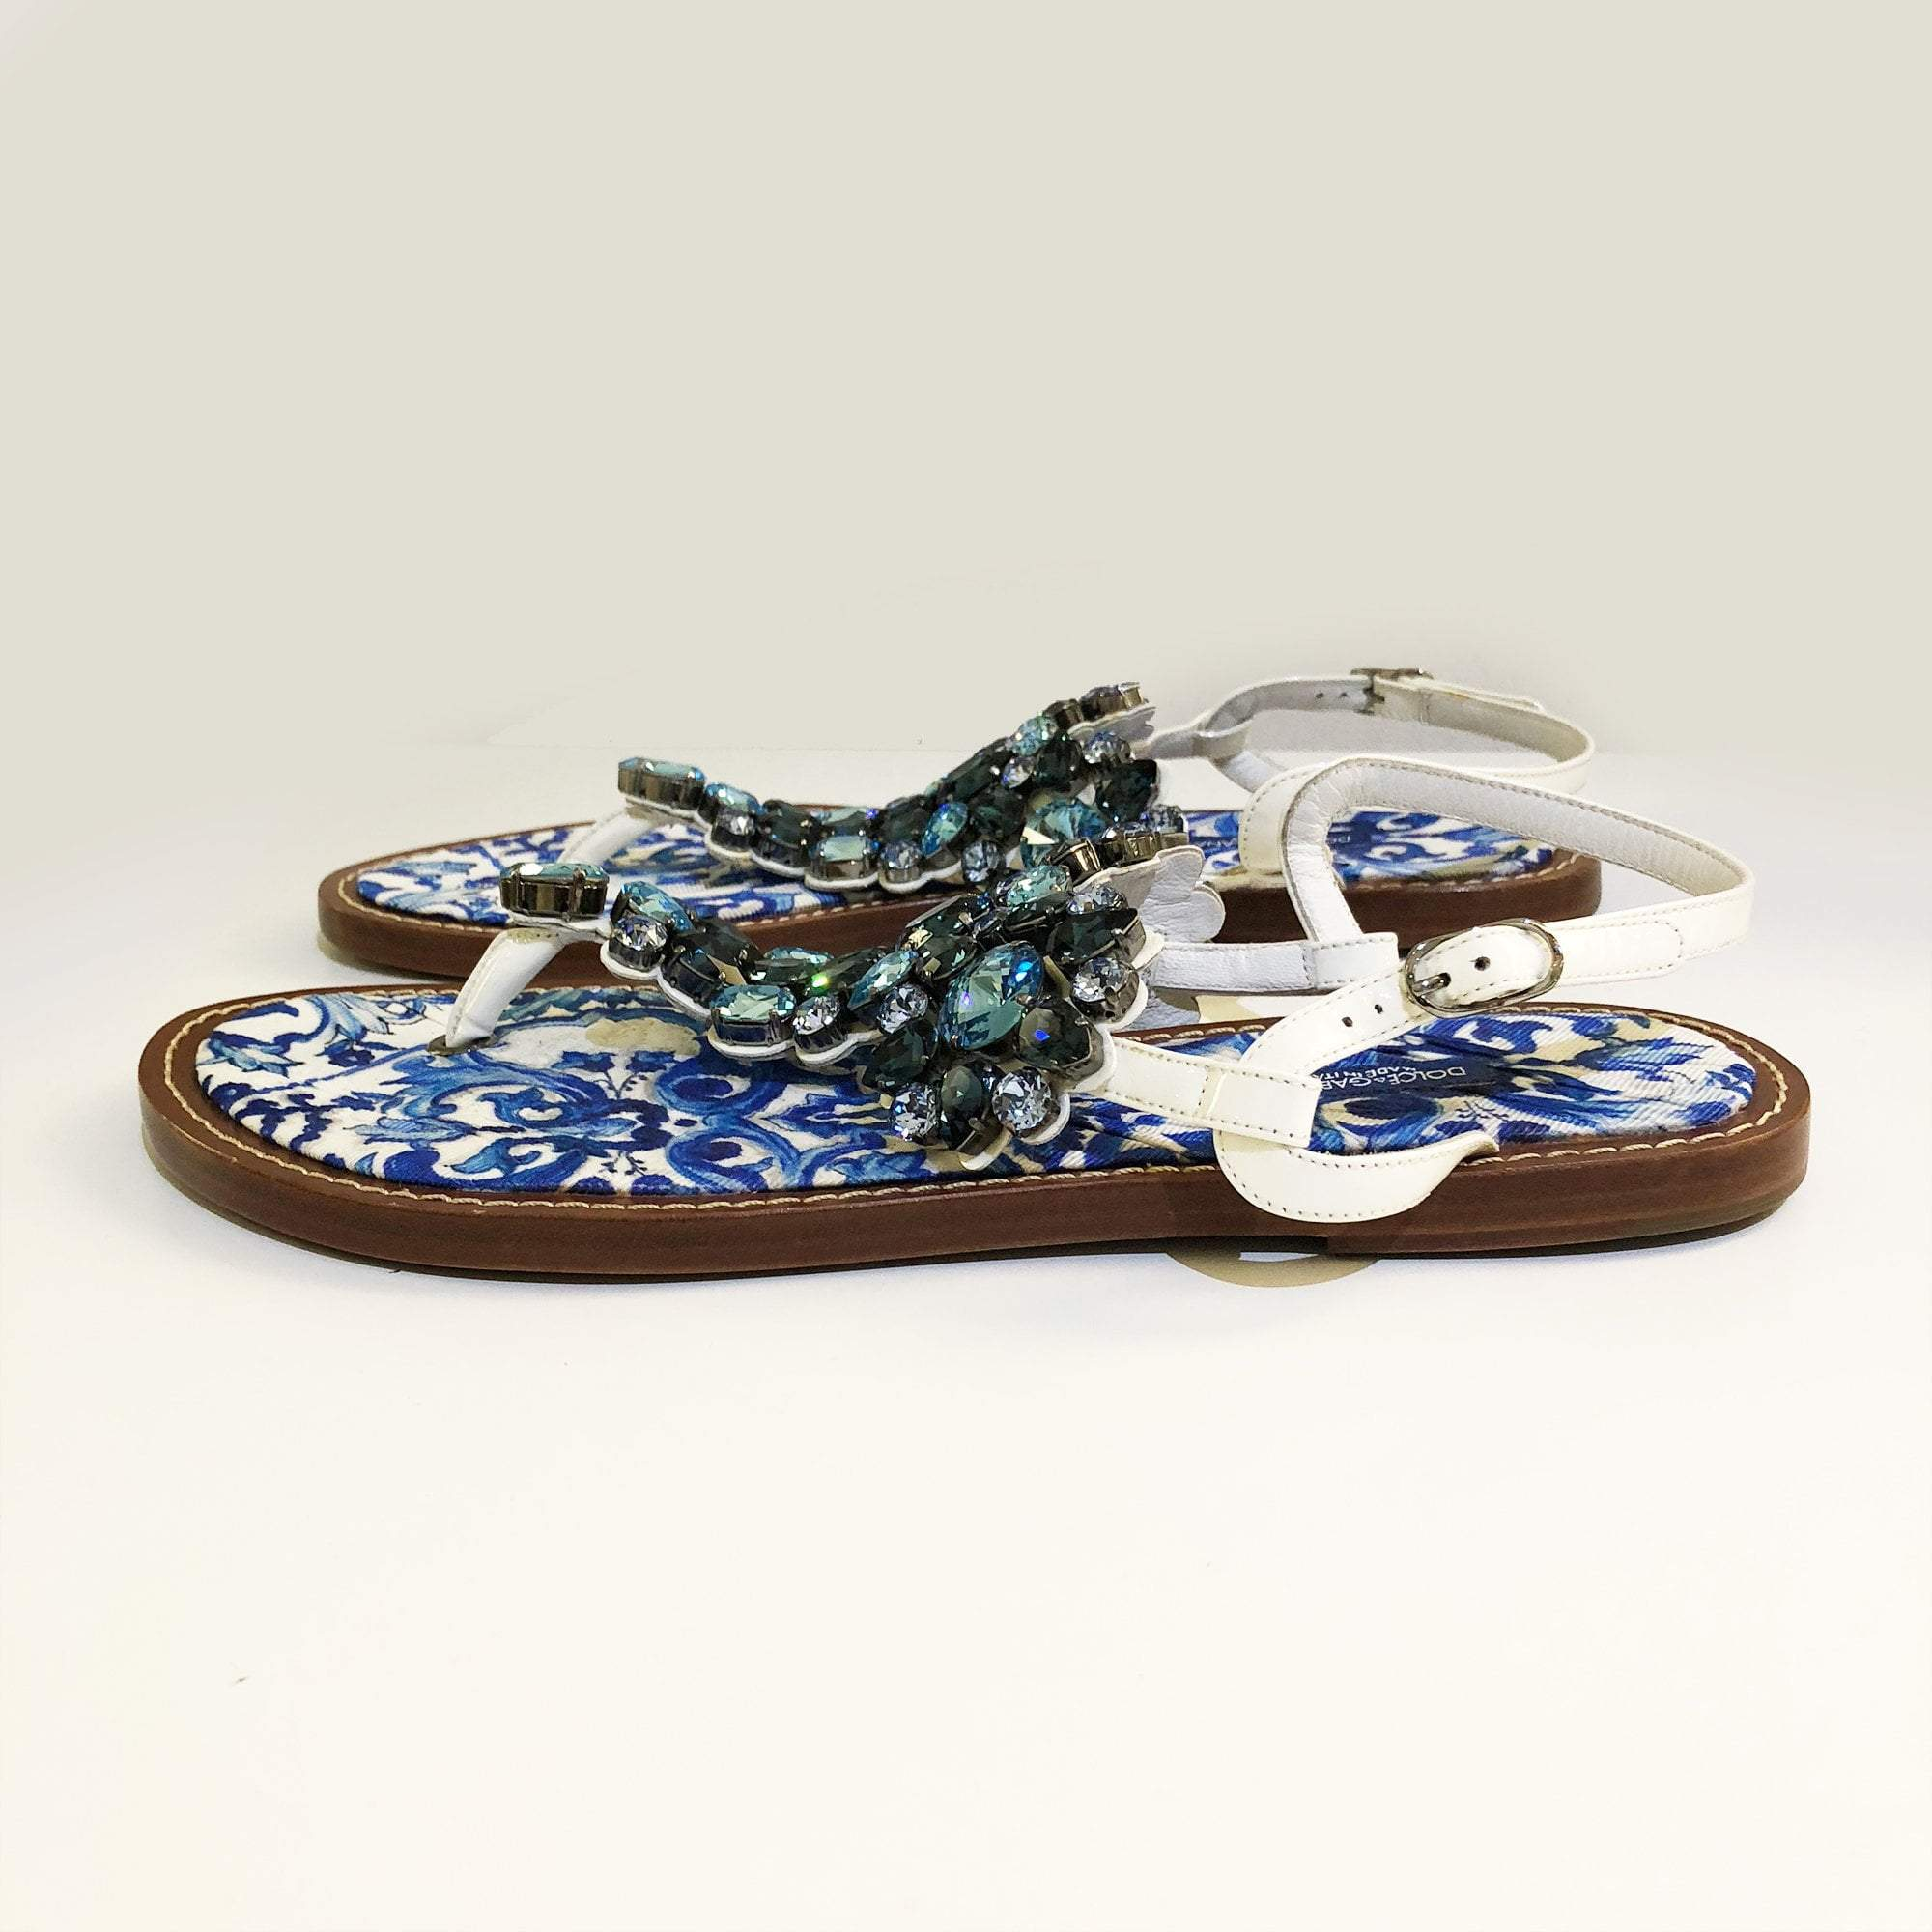 Dolce & Gabbana Blue Bejeweled Flat Leather Thong Sandals